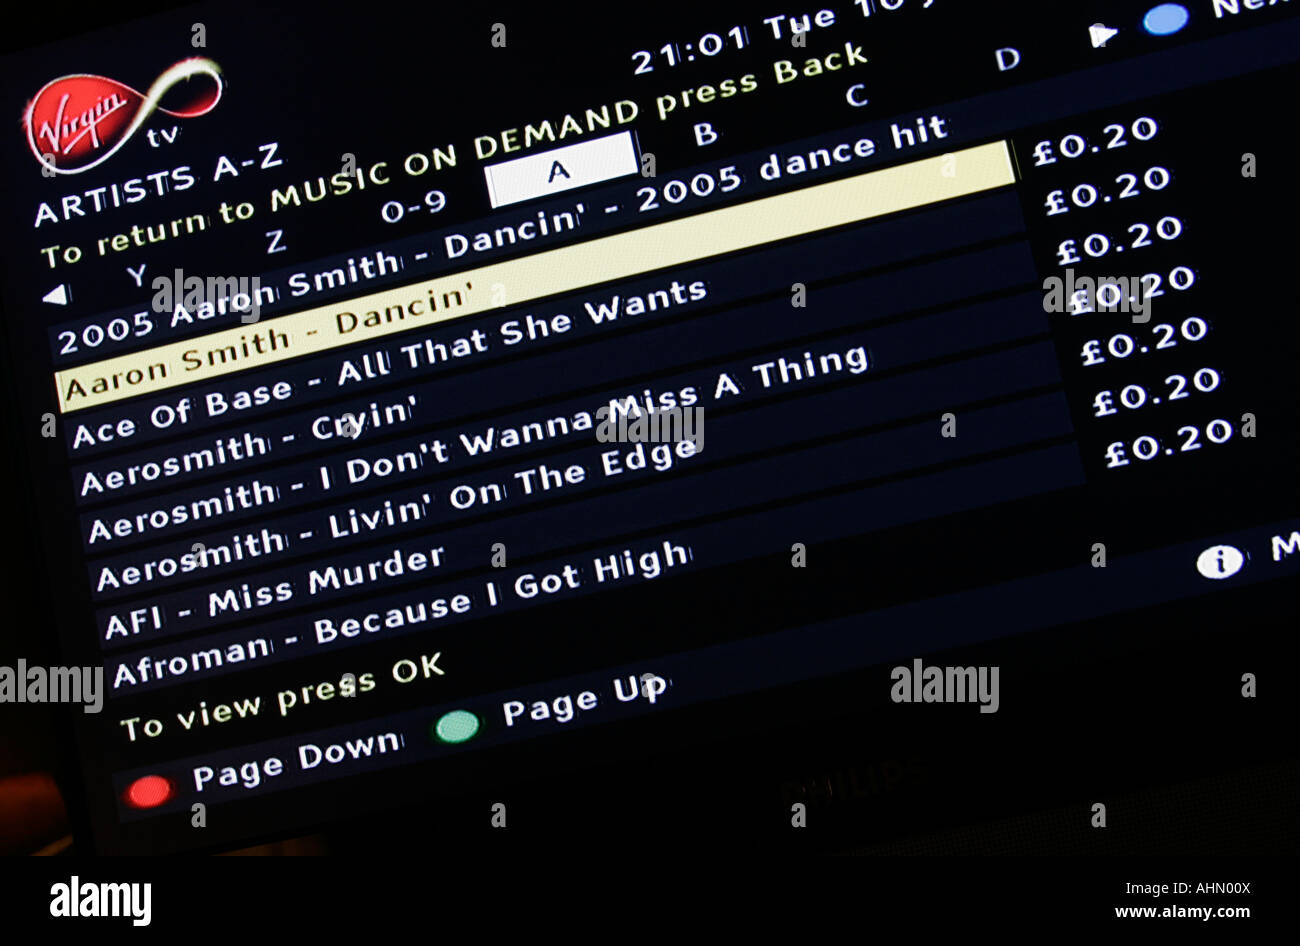 Detail of the music choices available to Virgin TV subsribers on